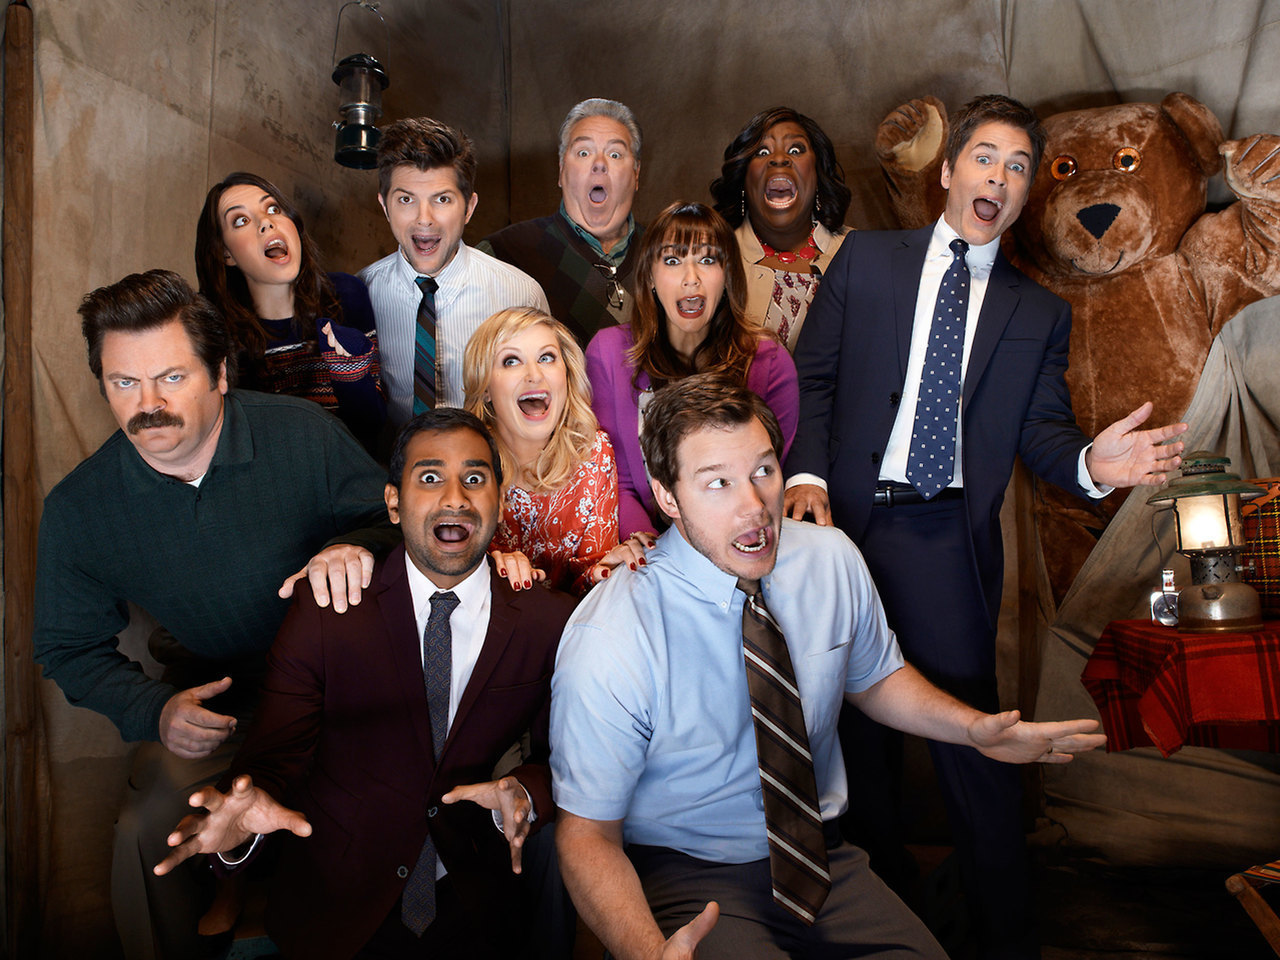 parks and recreation and parks and rec image